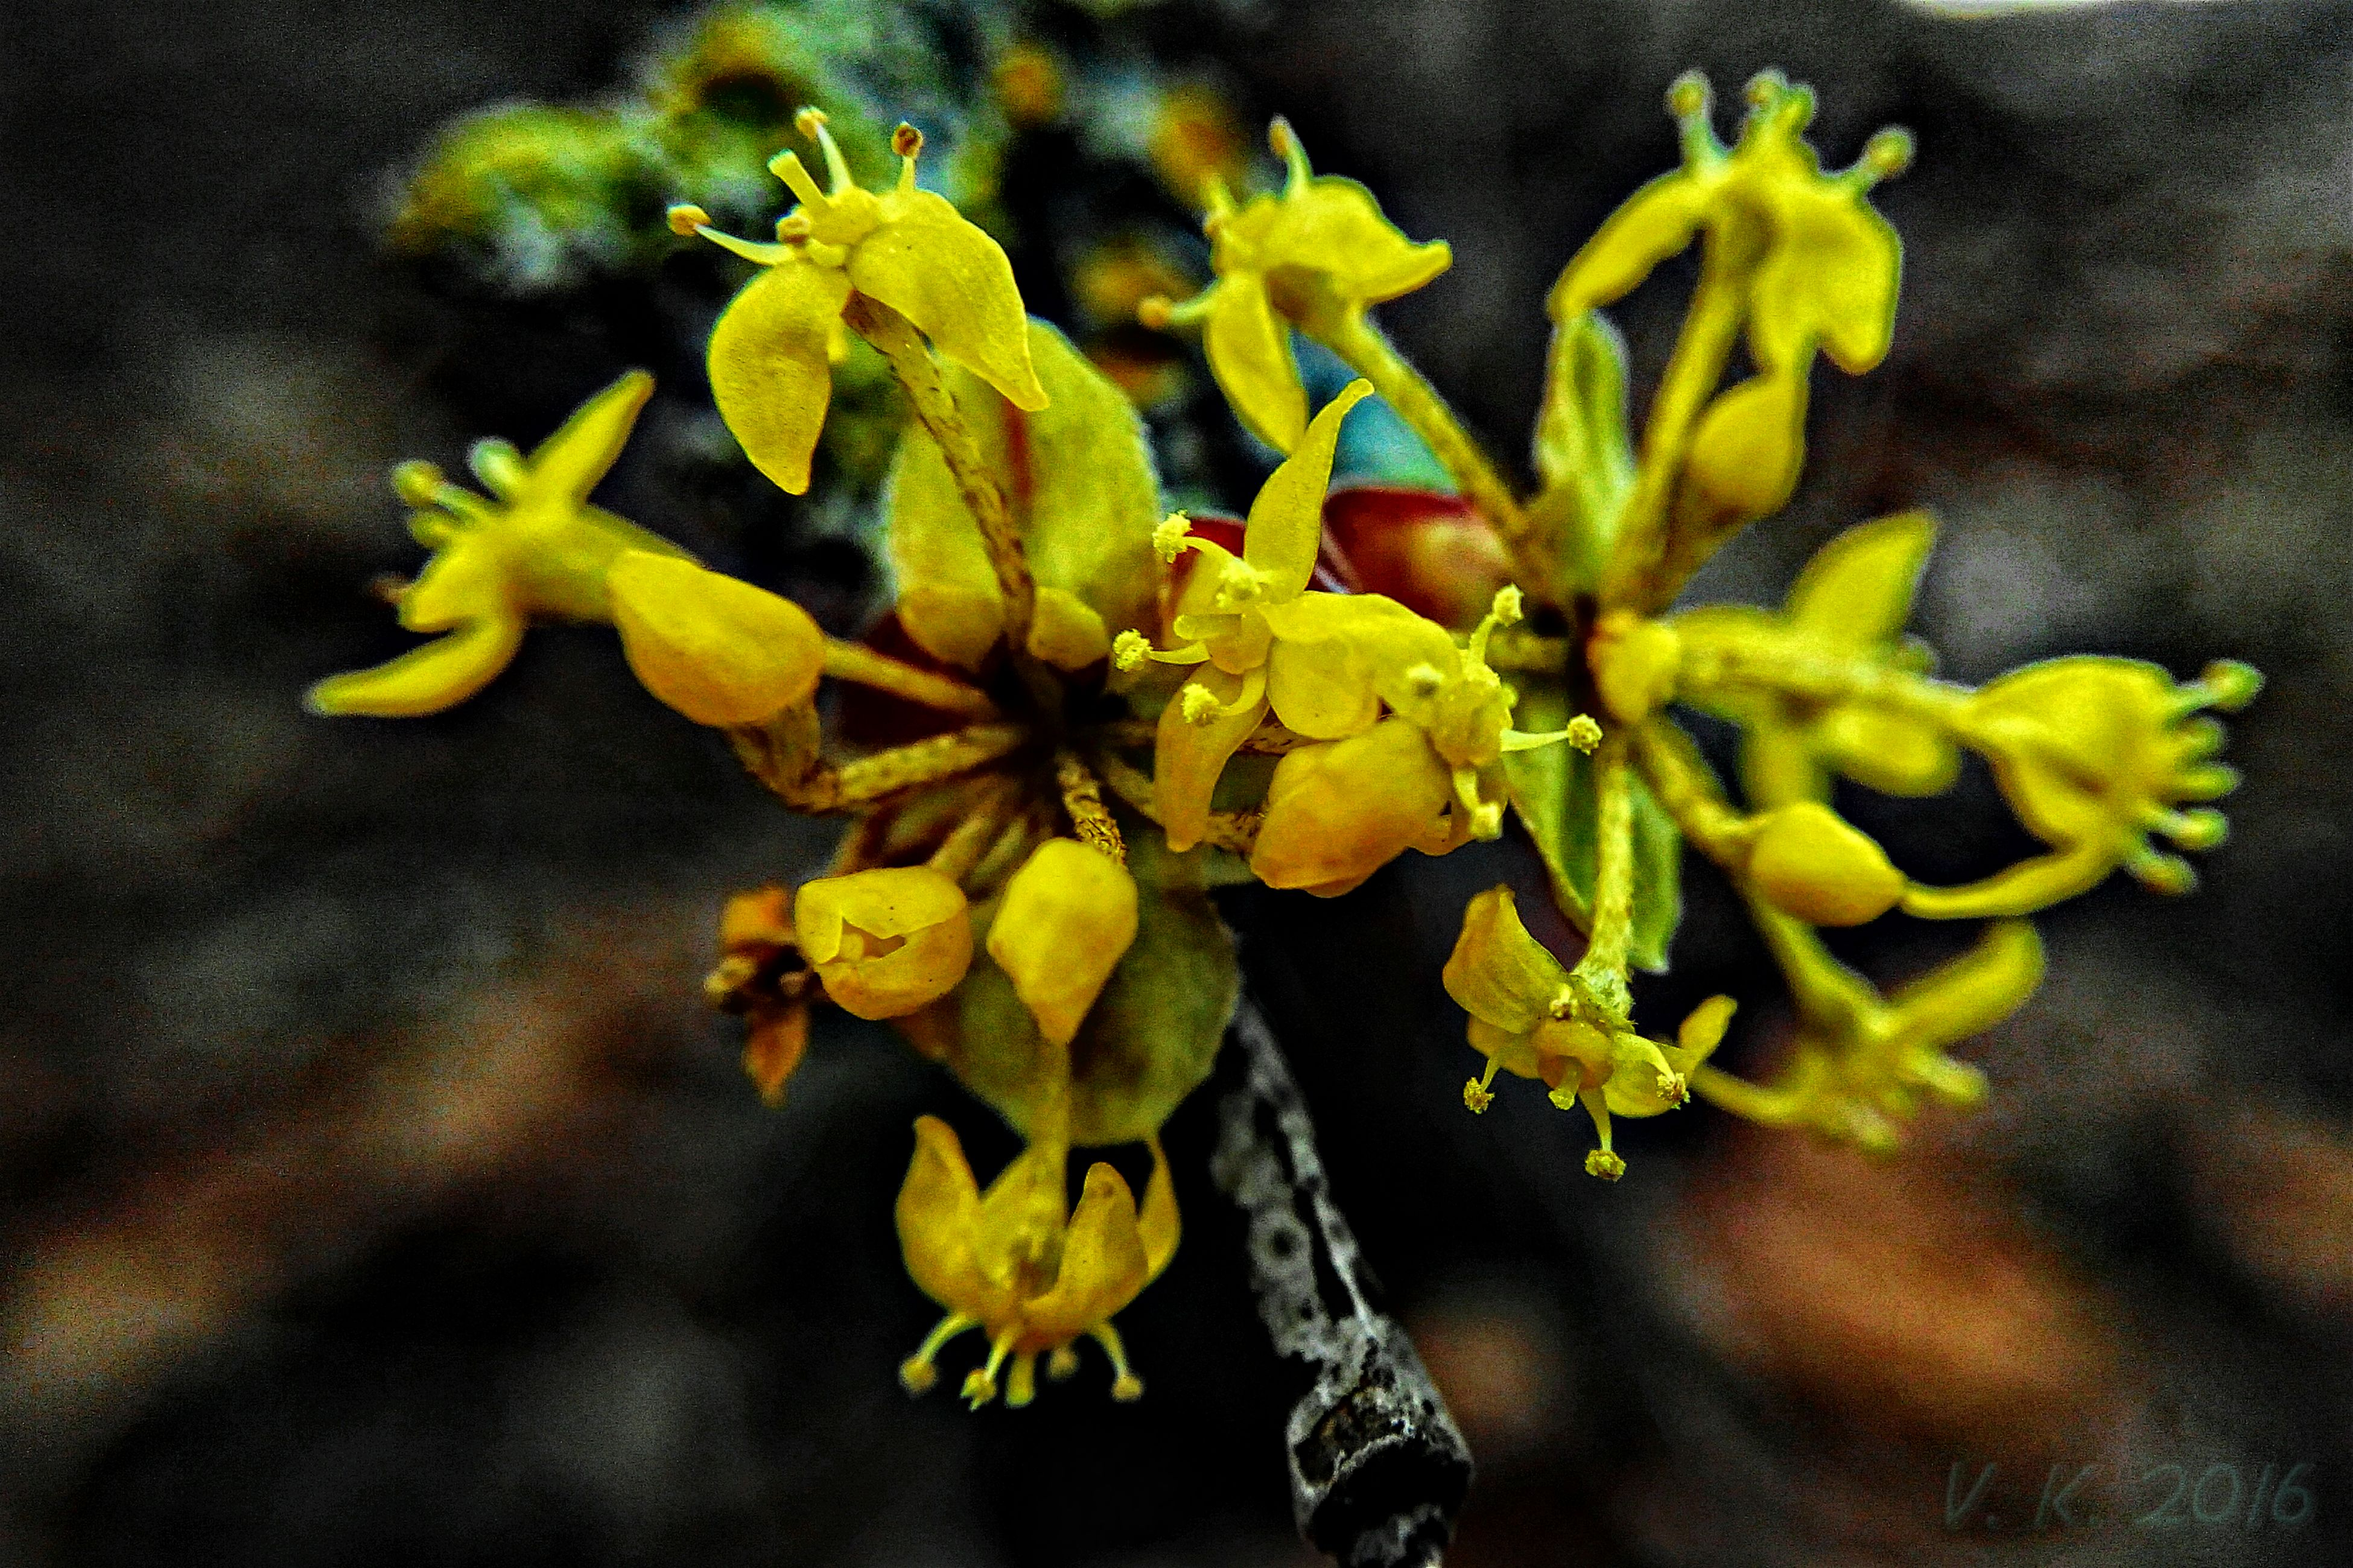 yellow, flower, growth, freshness, fragility, leaf, nature, close-up, petal, focus on foreground, beauty in nature, plant, stem, flower head, outdoors, no people, day, season, botany, bud